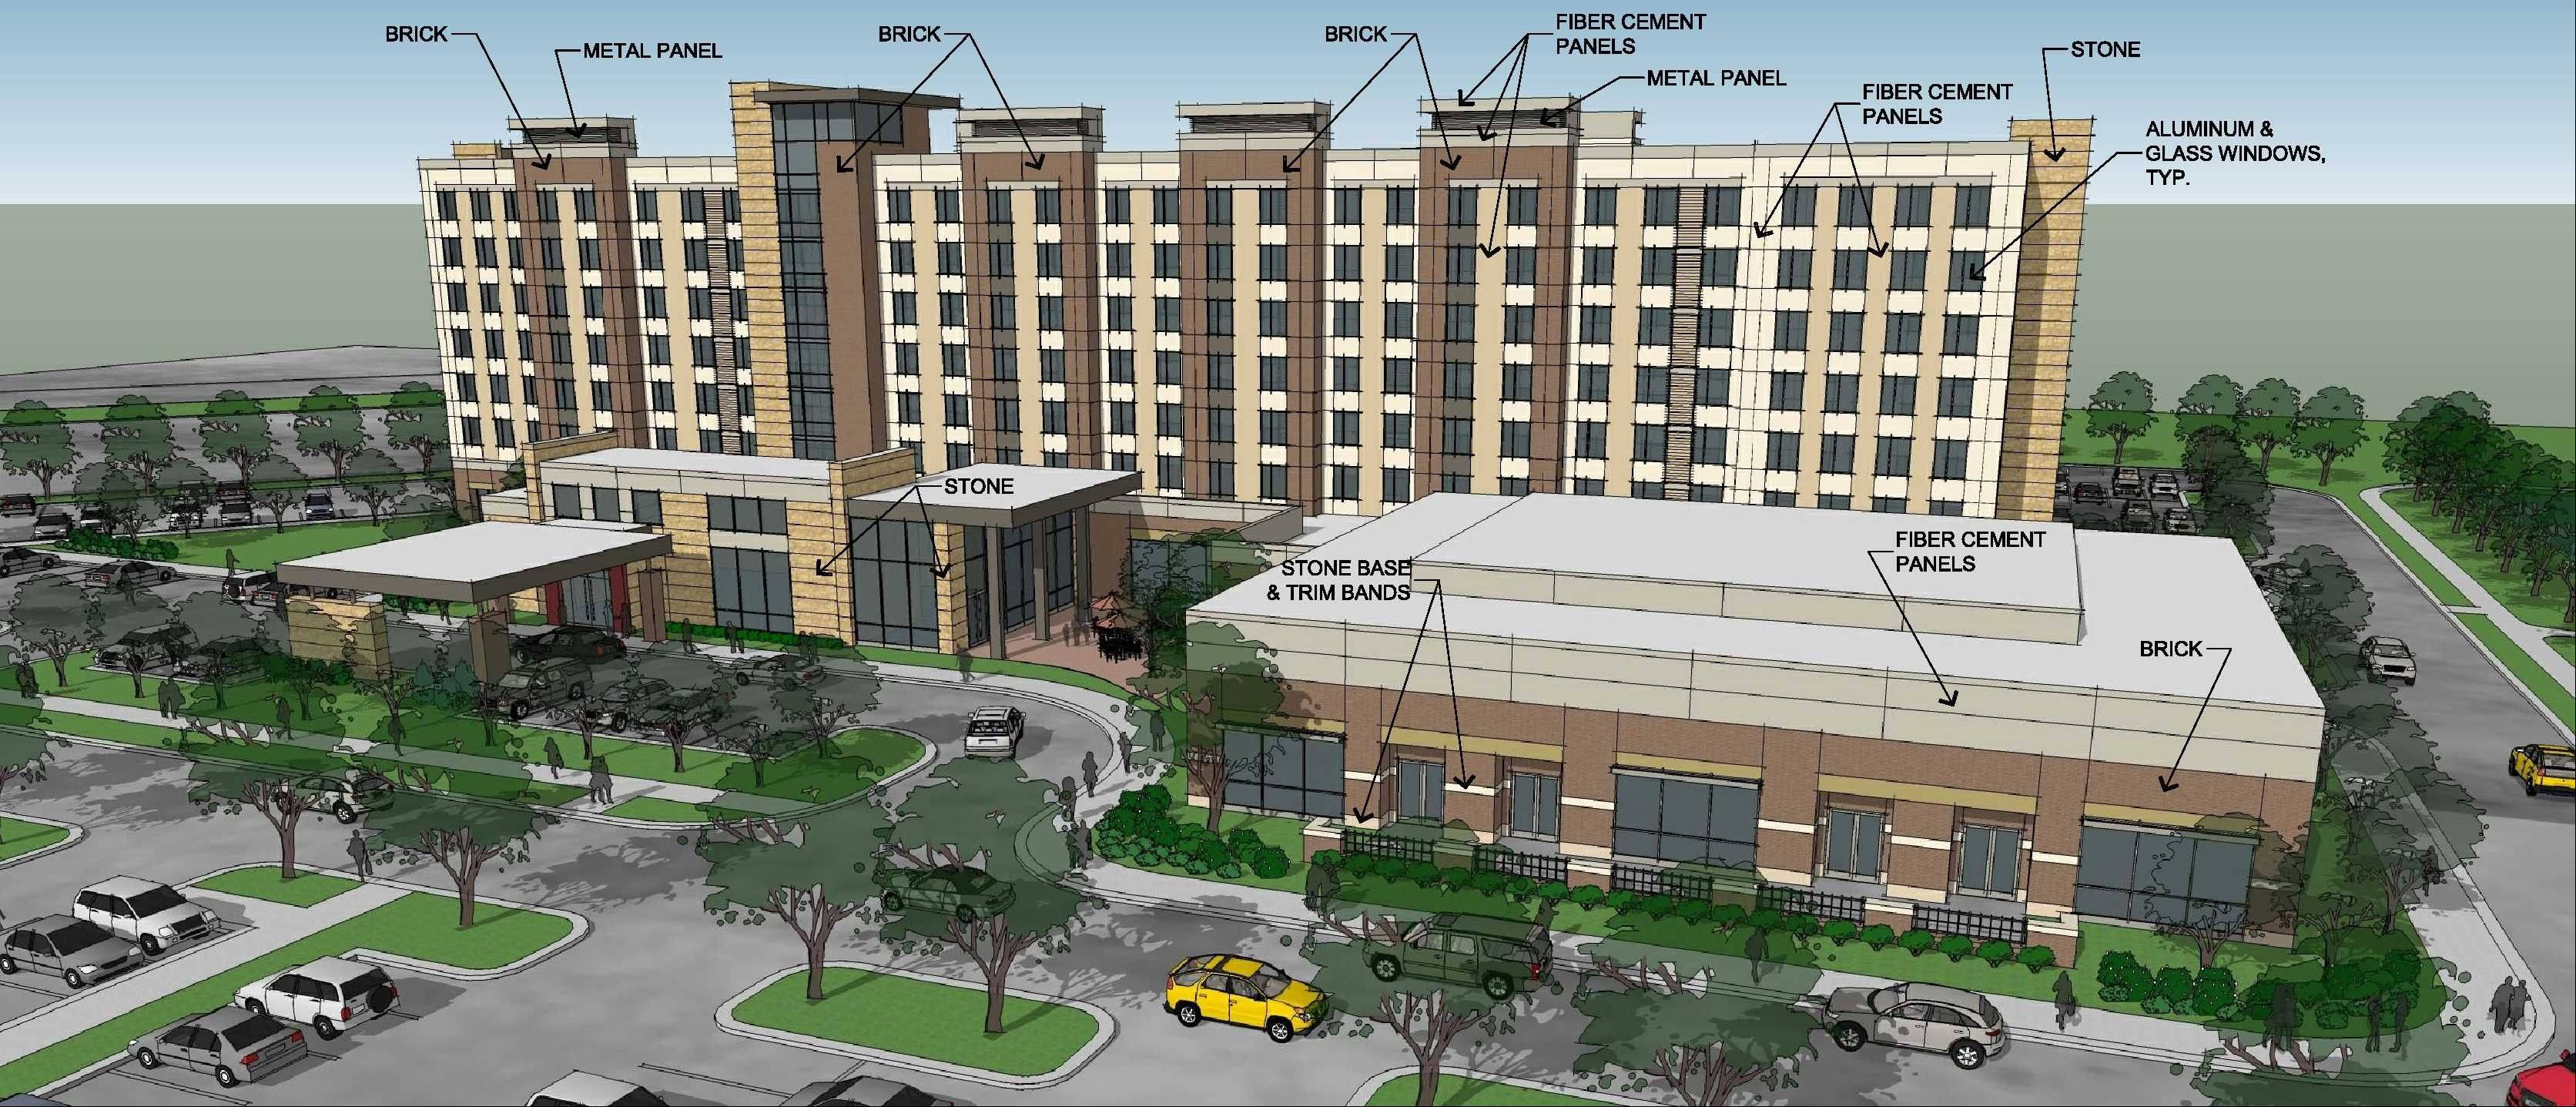 Freedom Plaza hotel, conference center plan gets Naperville approval